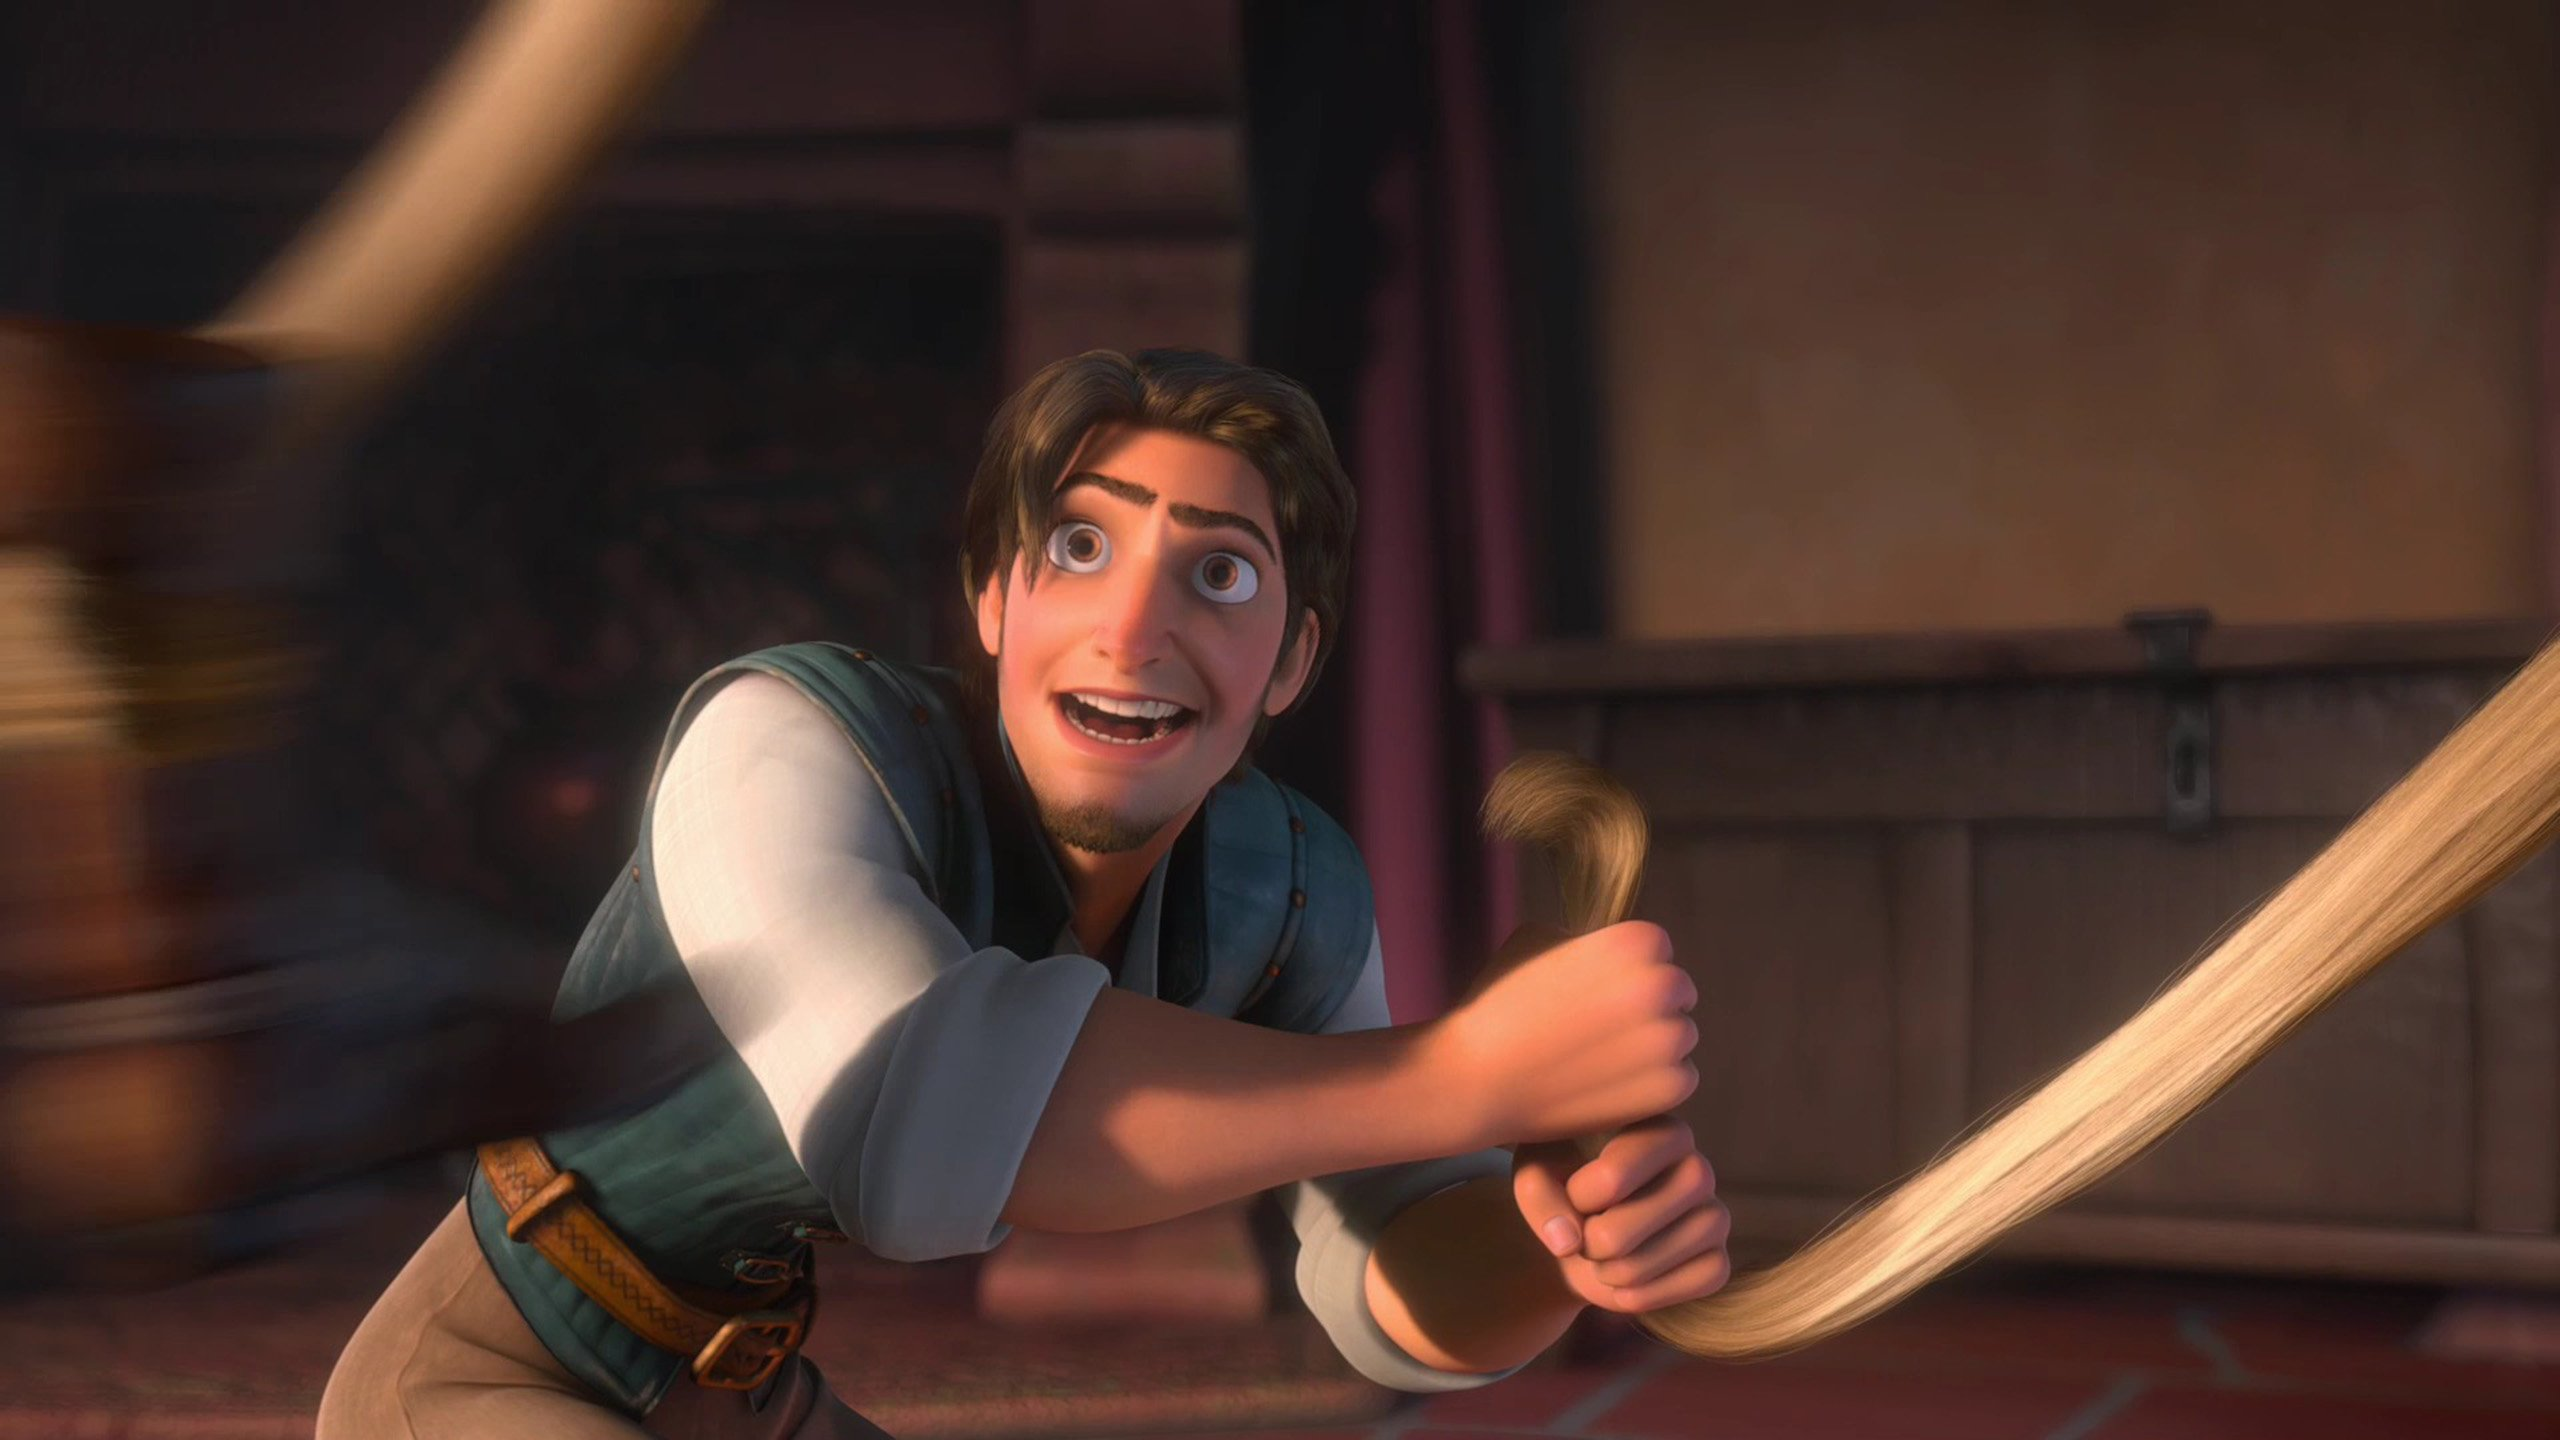 tangled-122(www.TheWallpapers.org).jpg